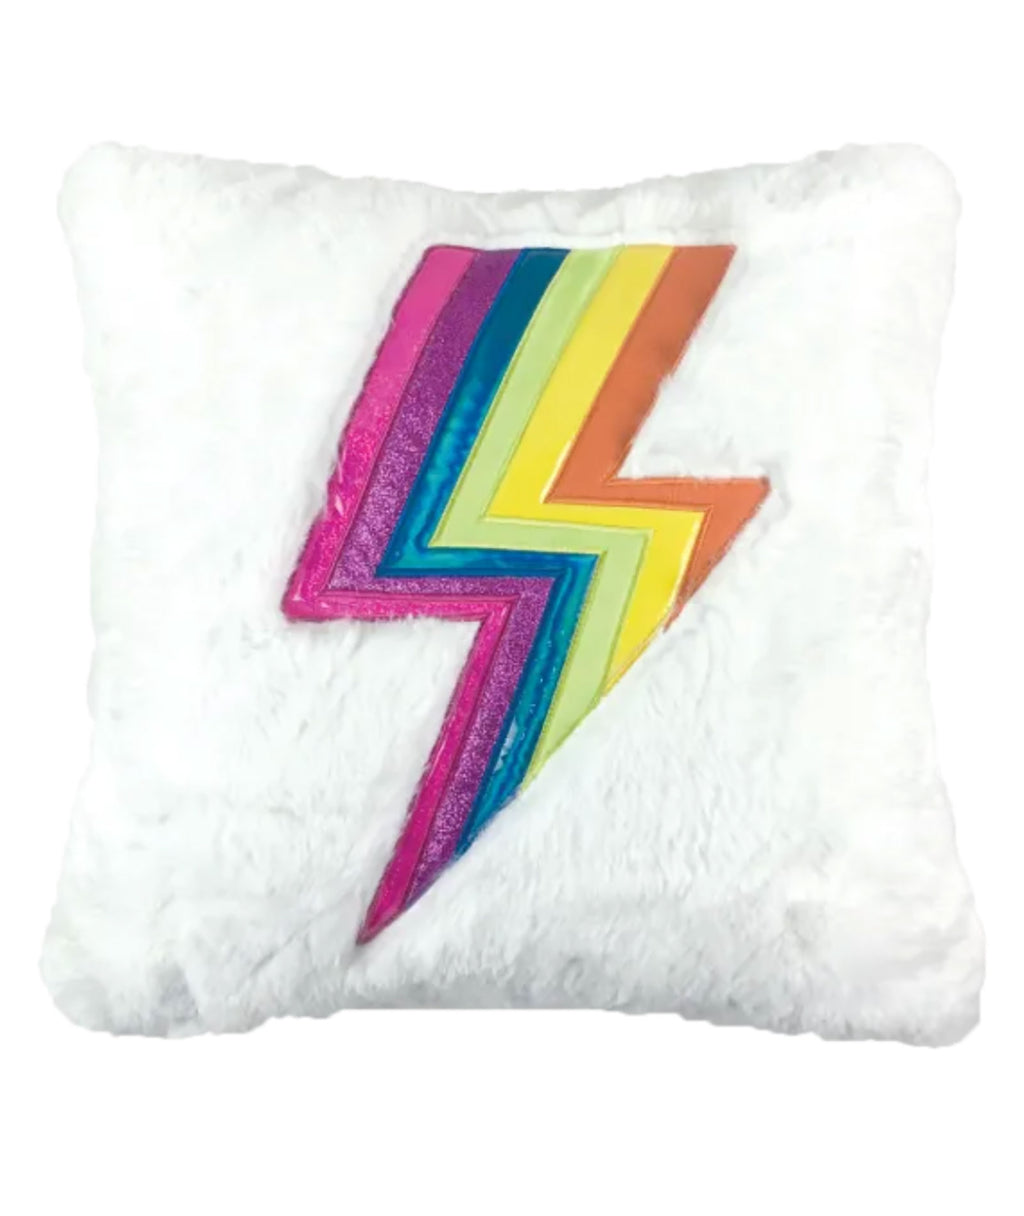 iScream Bolt Fuzzy Pillow